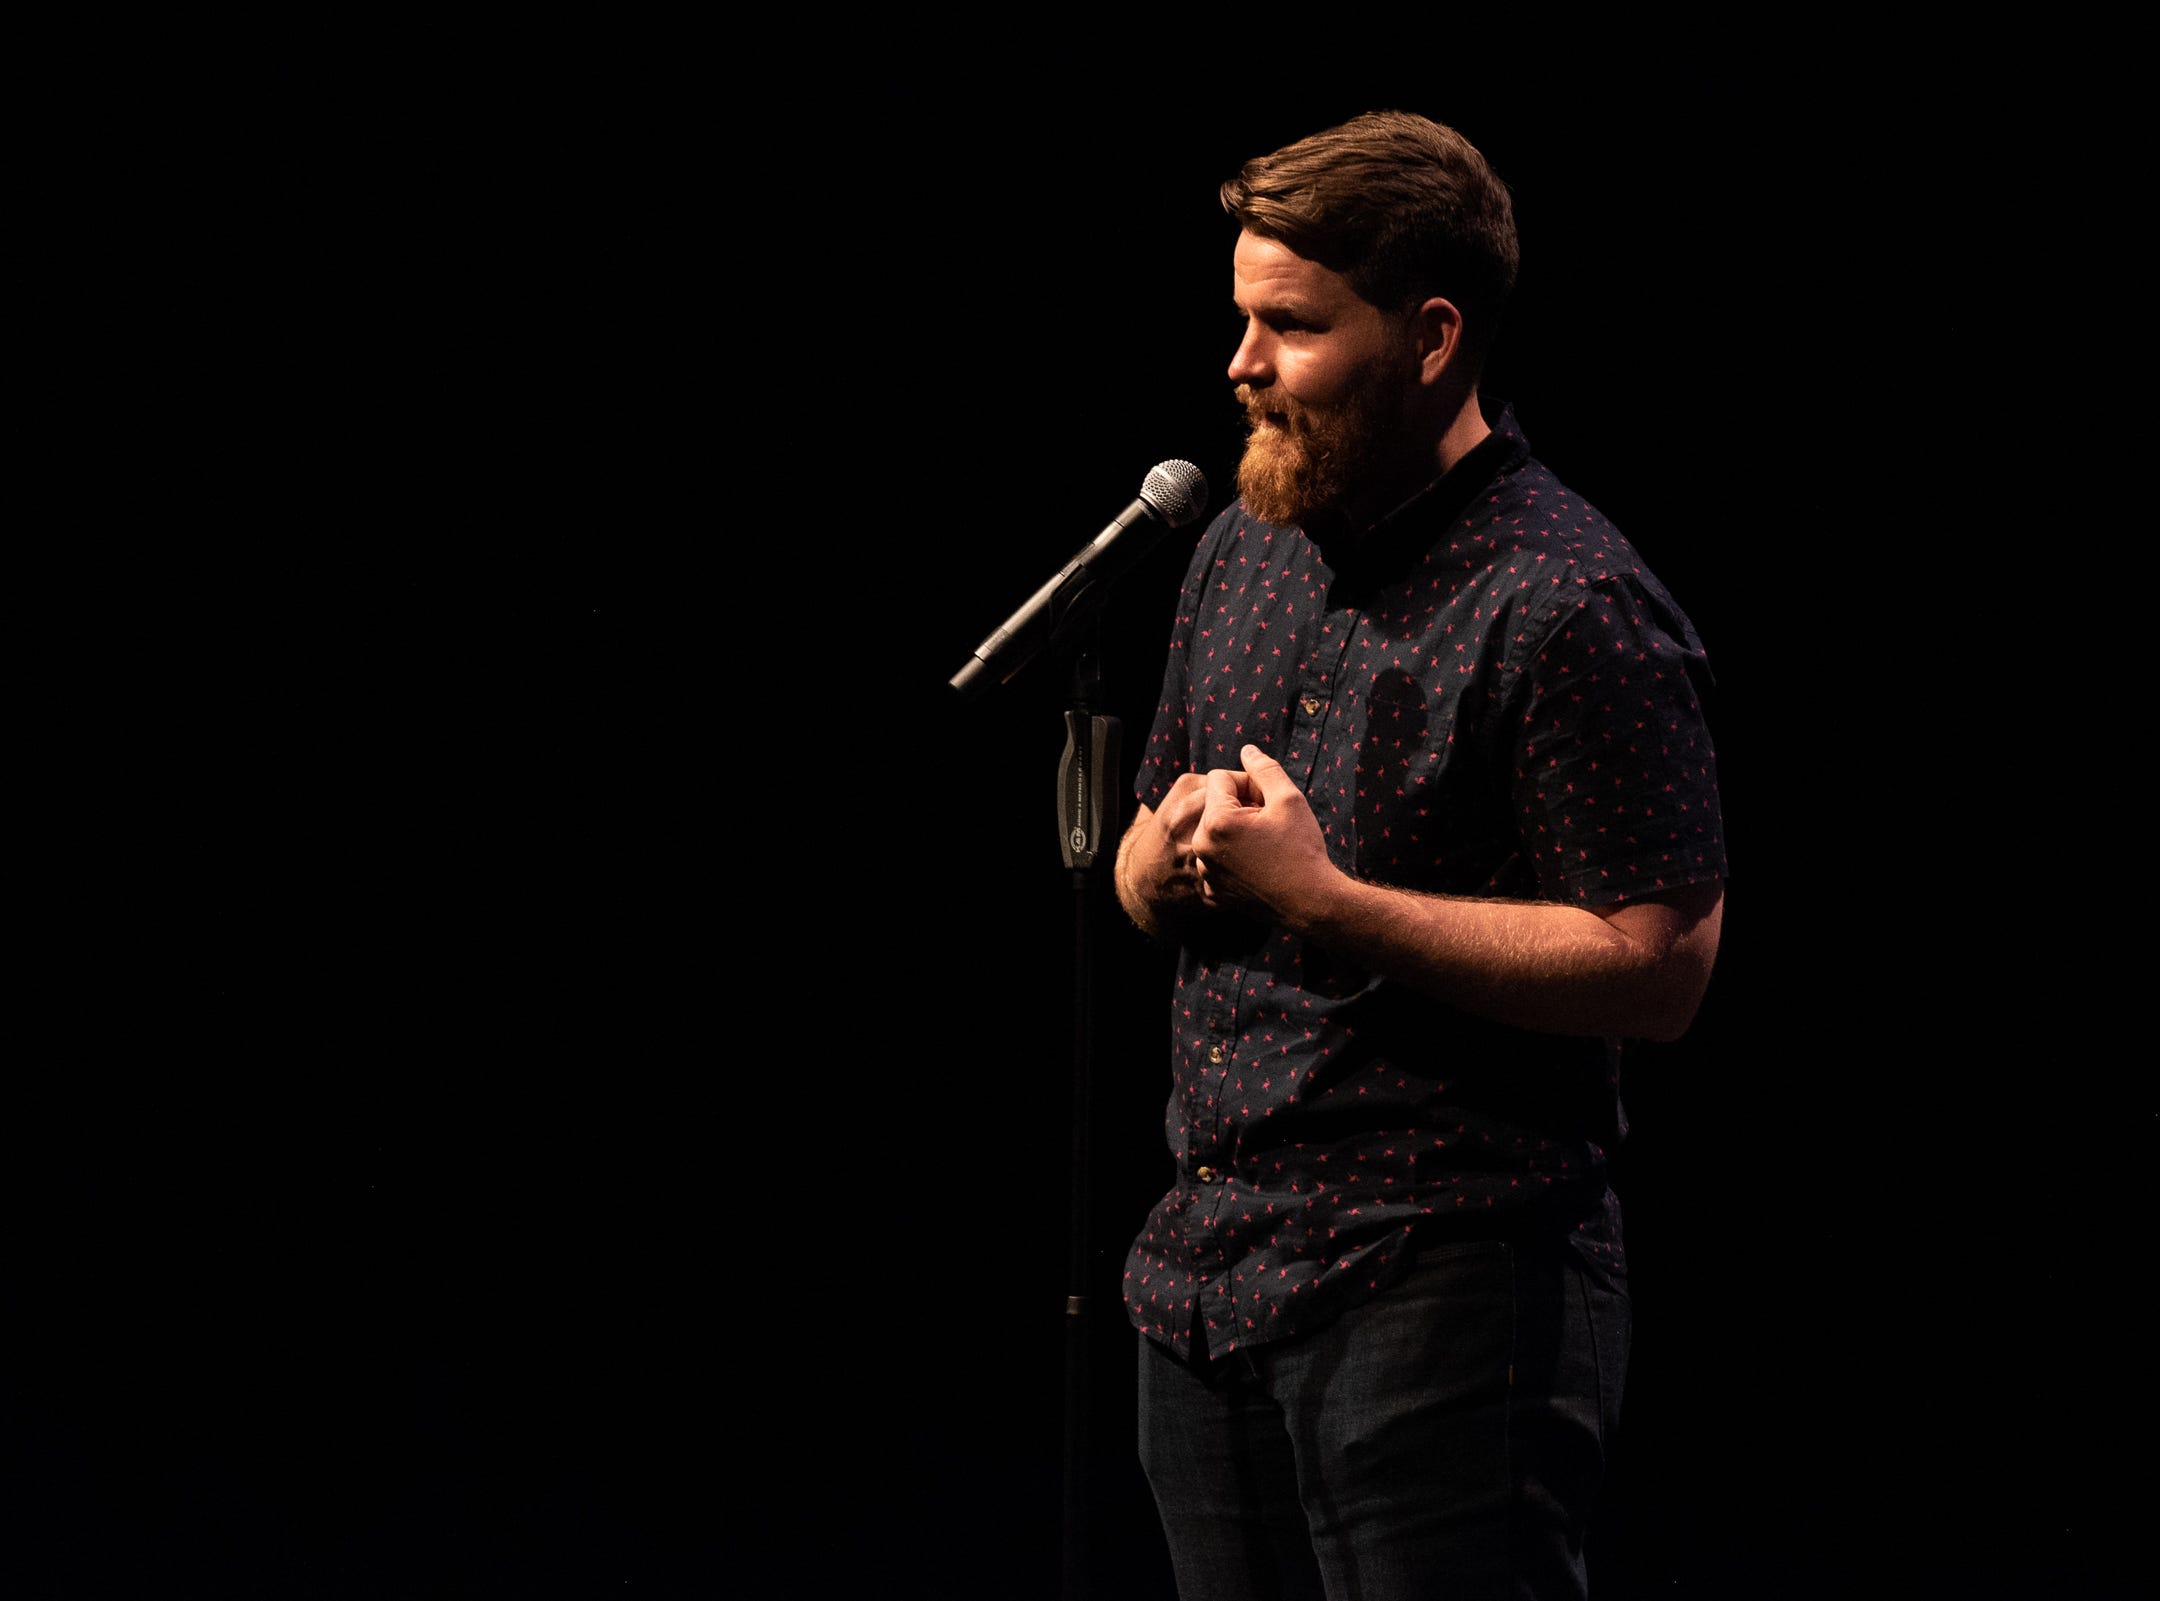 """Josh Shore shares his story with the audience during """"Arizona Storytellers: Romance or Not"""" at Scottsdale Center for the Performing Arts in Scottsdale, Ariz., Wednesday, Feb. 13, 2019."""